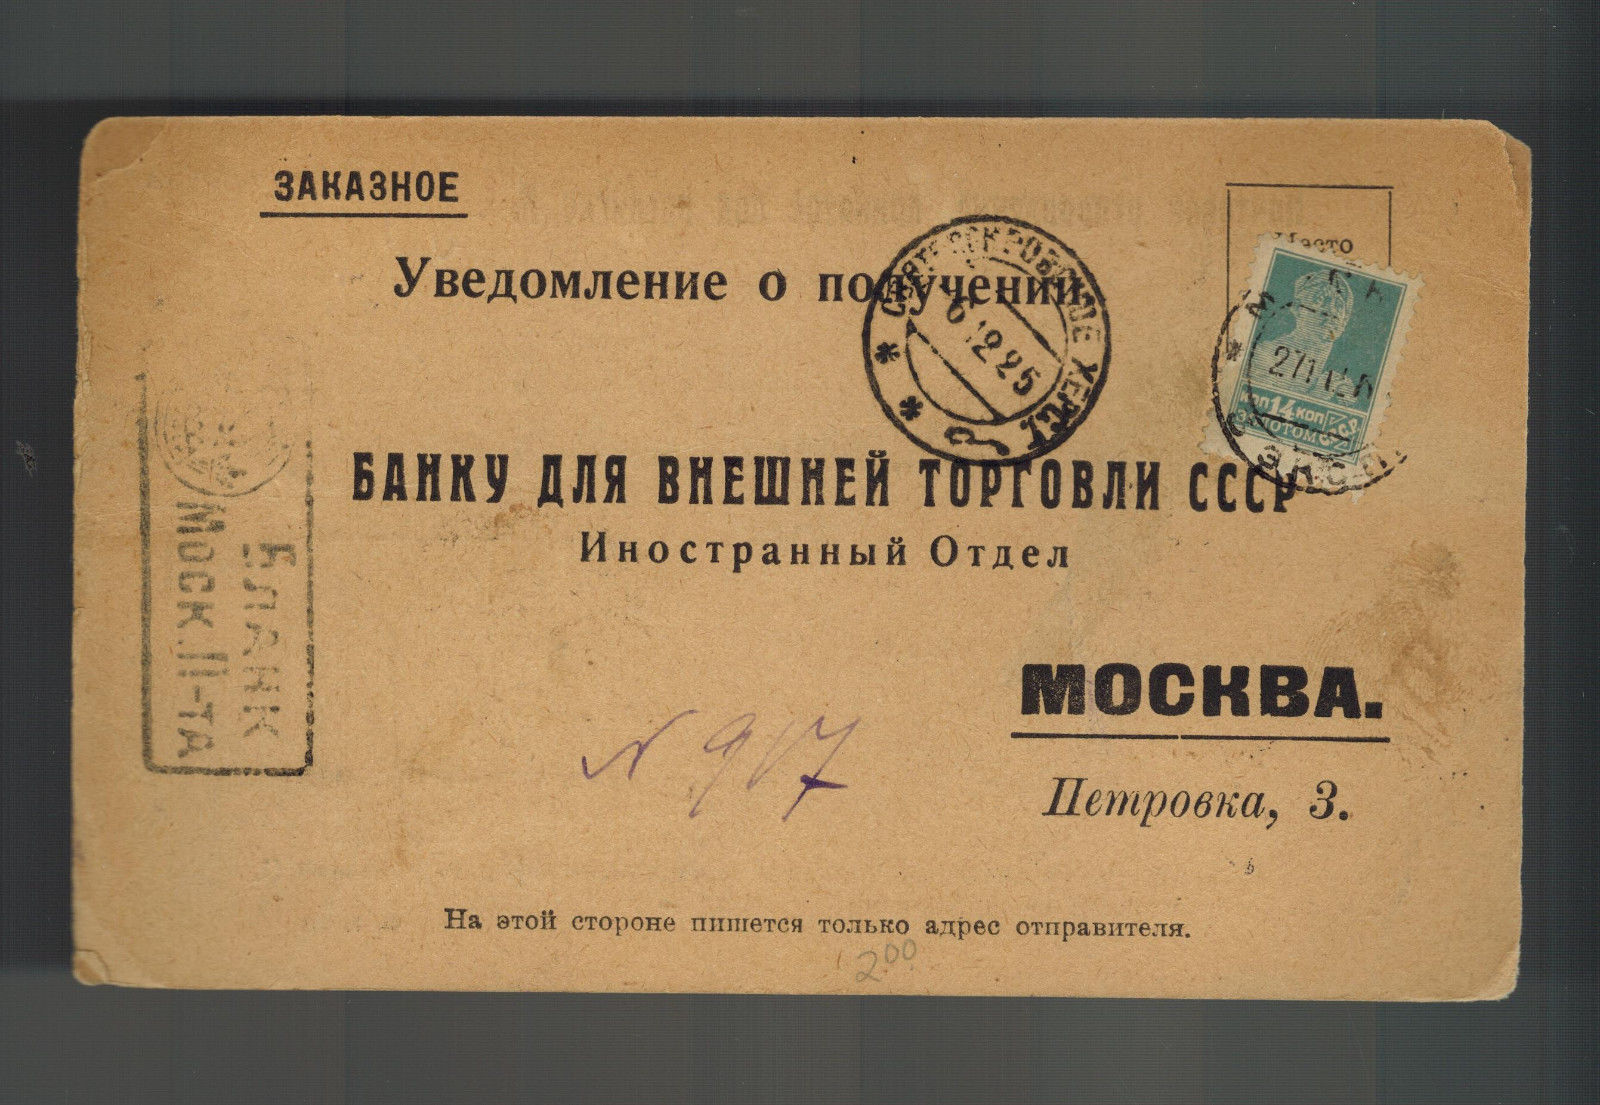 1925 Moscow Russia Ussr Postcard Cover Money Order Receipt Bank Registered Register Hipstamp